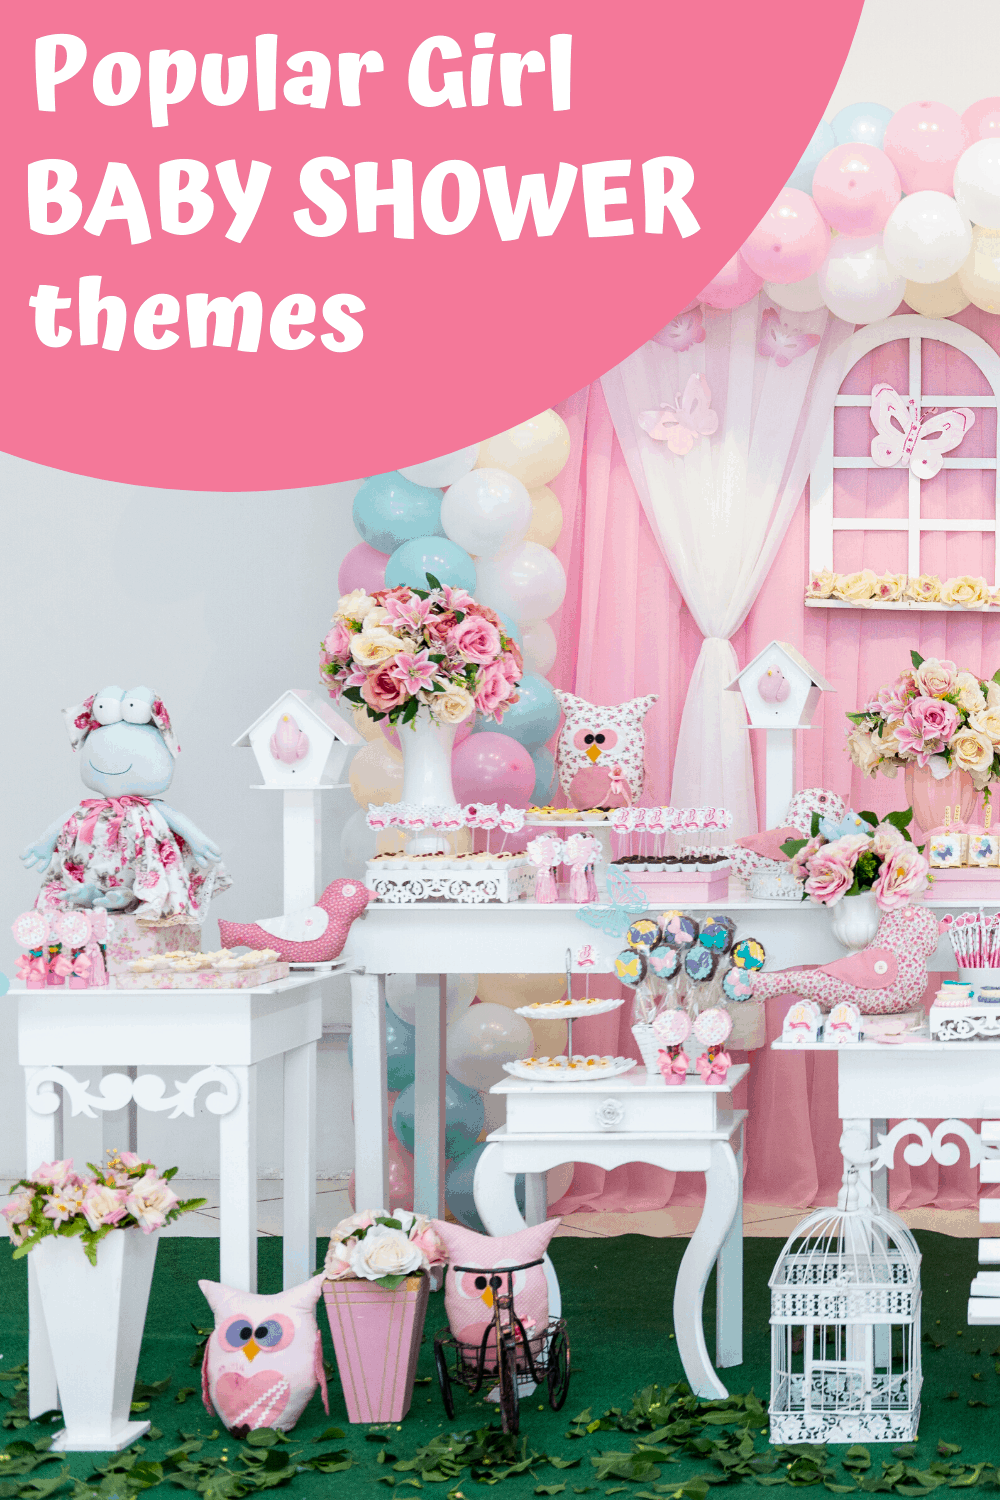 Popular Girl Bay Shower Themes